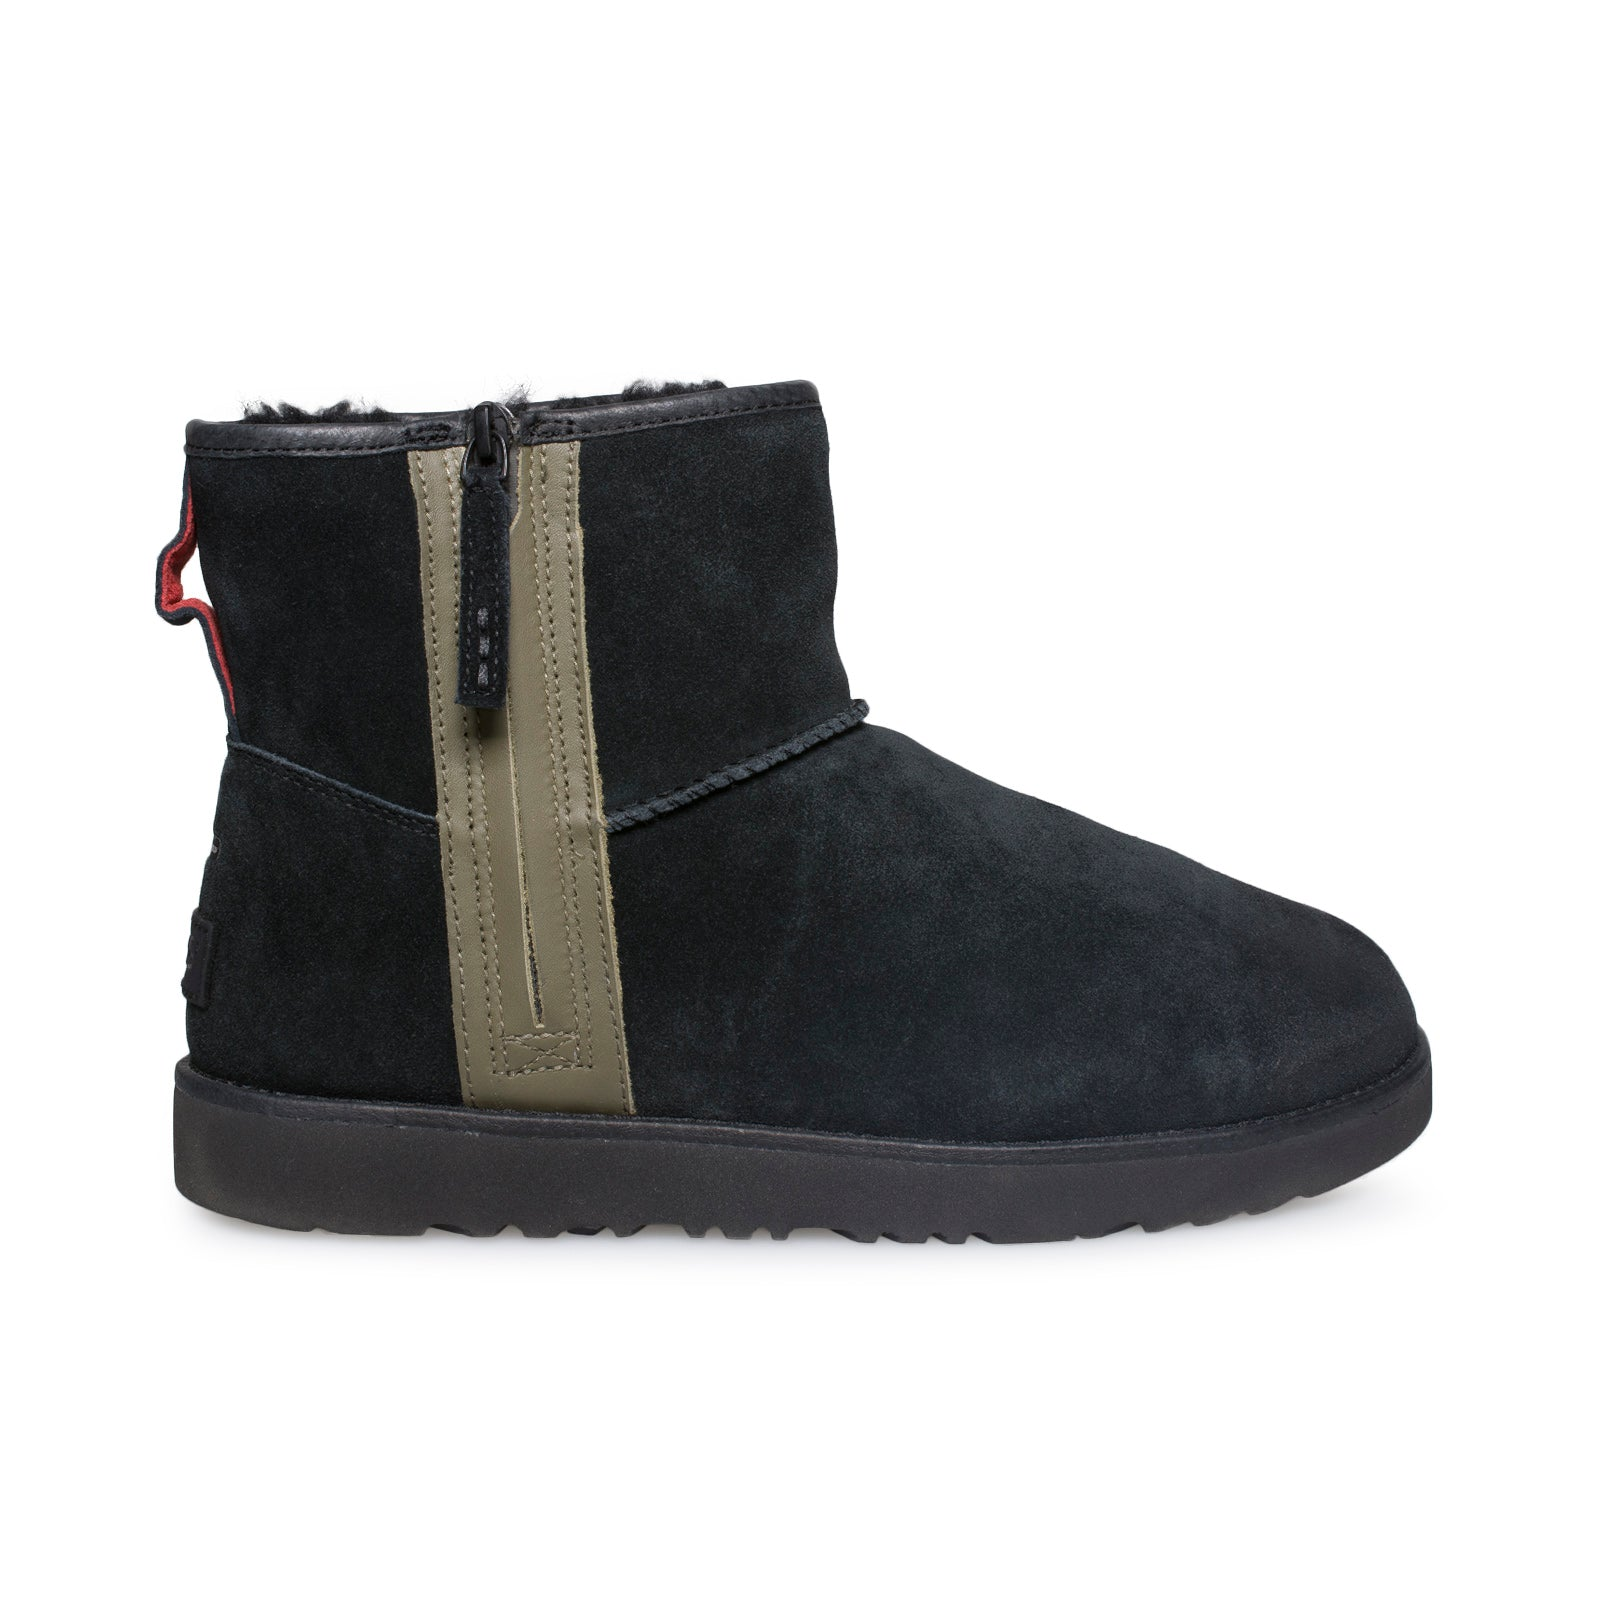 Ugg Classic Mini Zip Waterproof Black Boots Mycozyboots